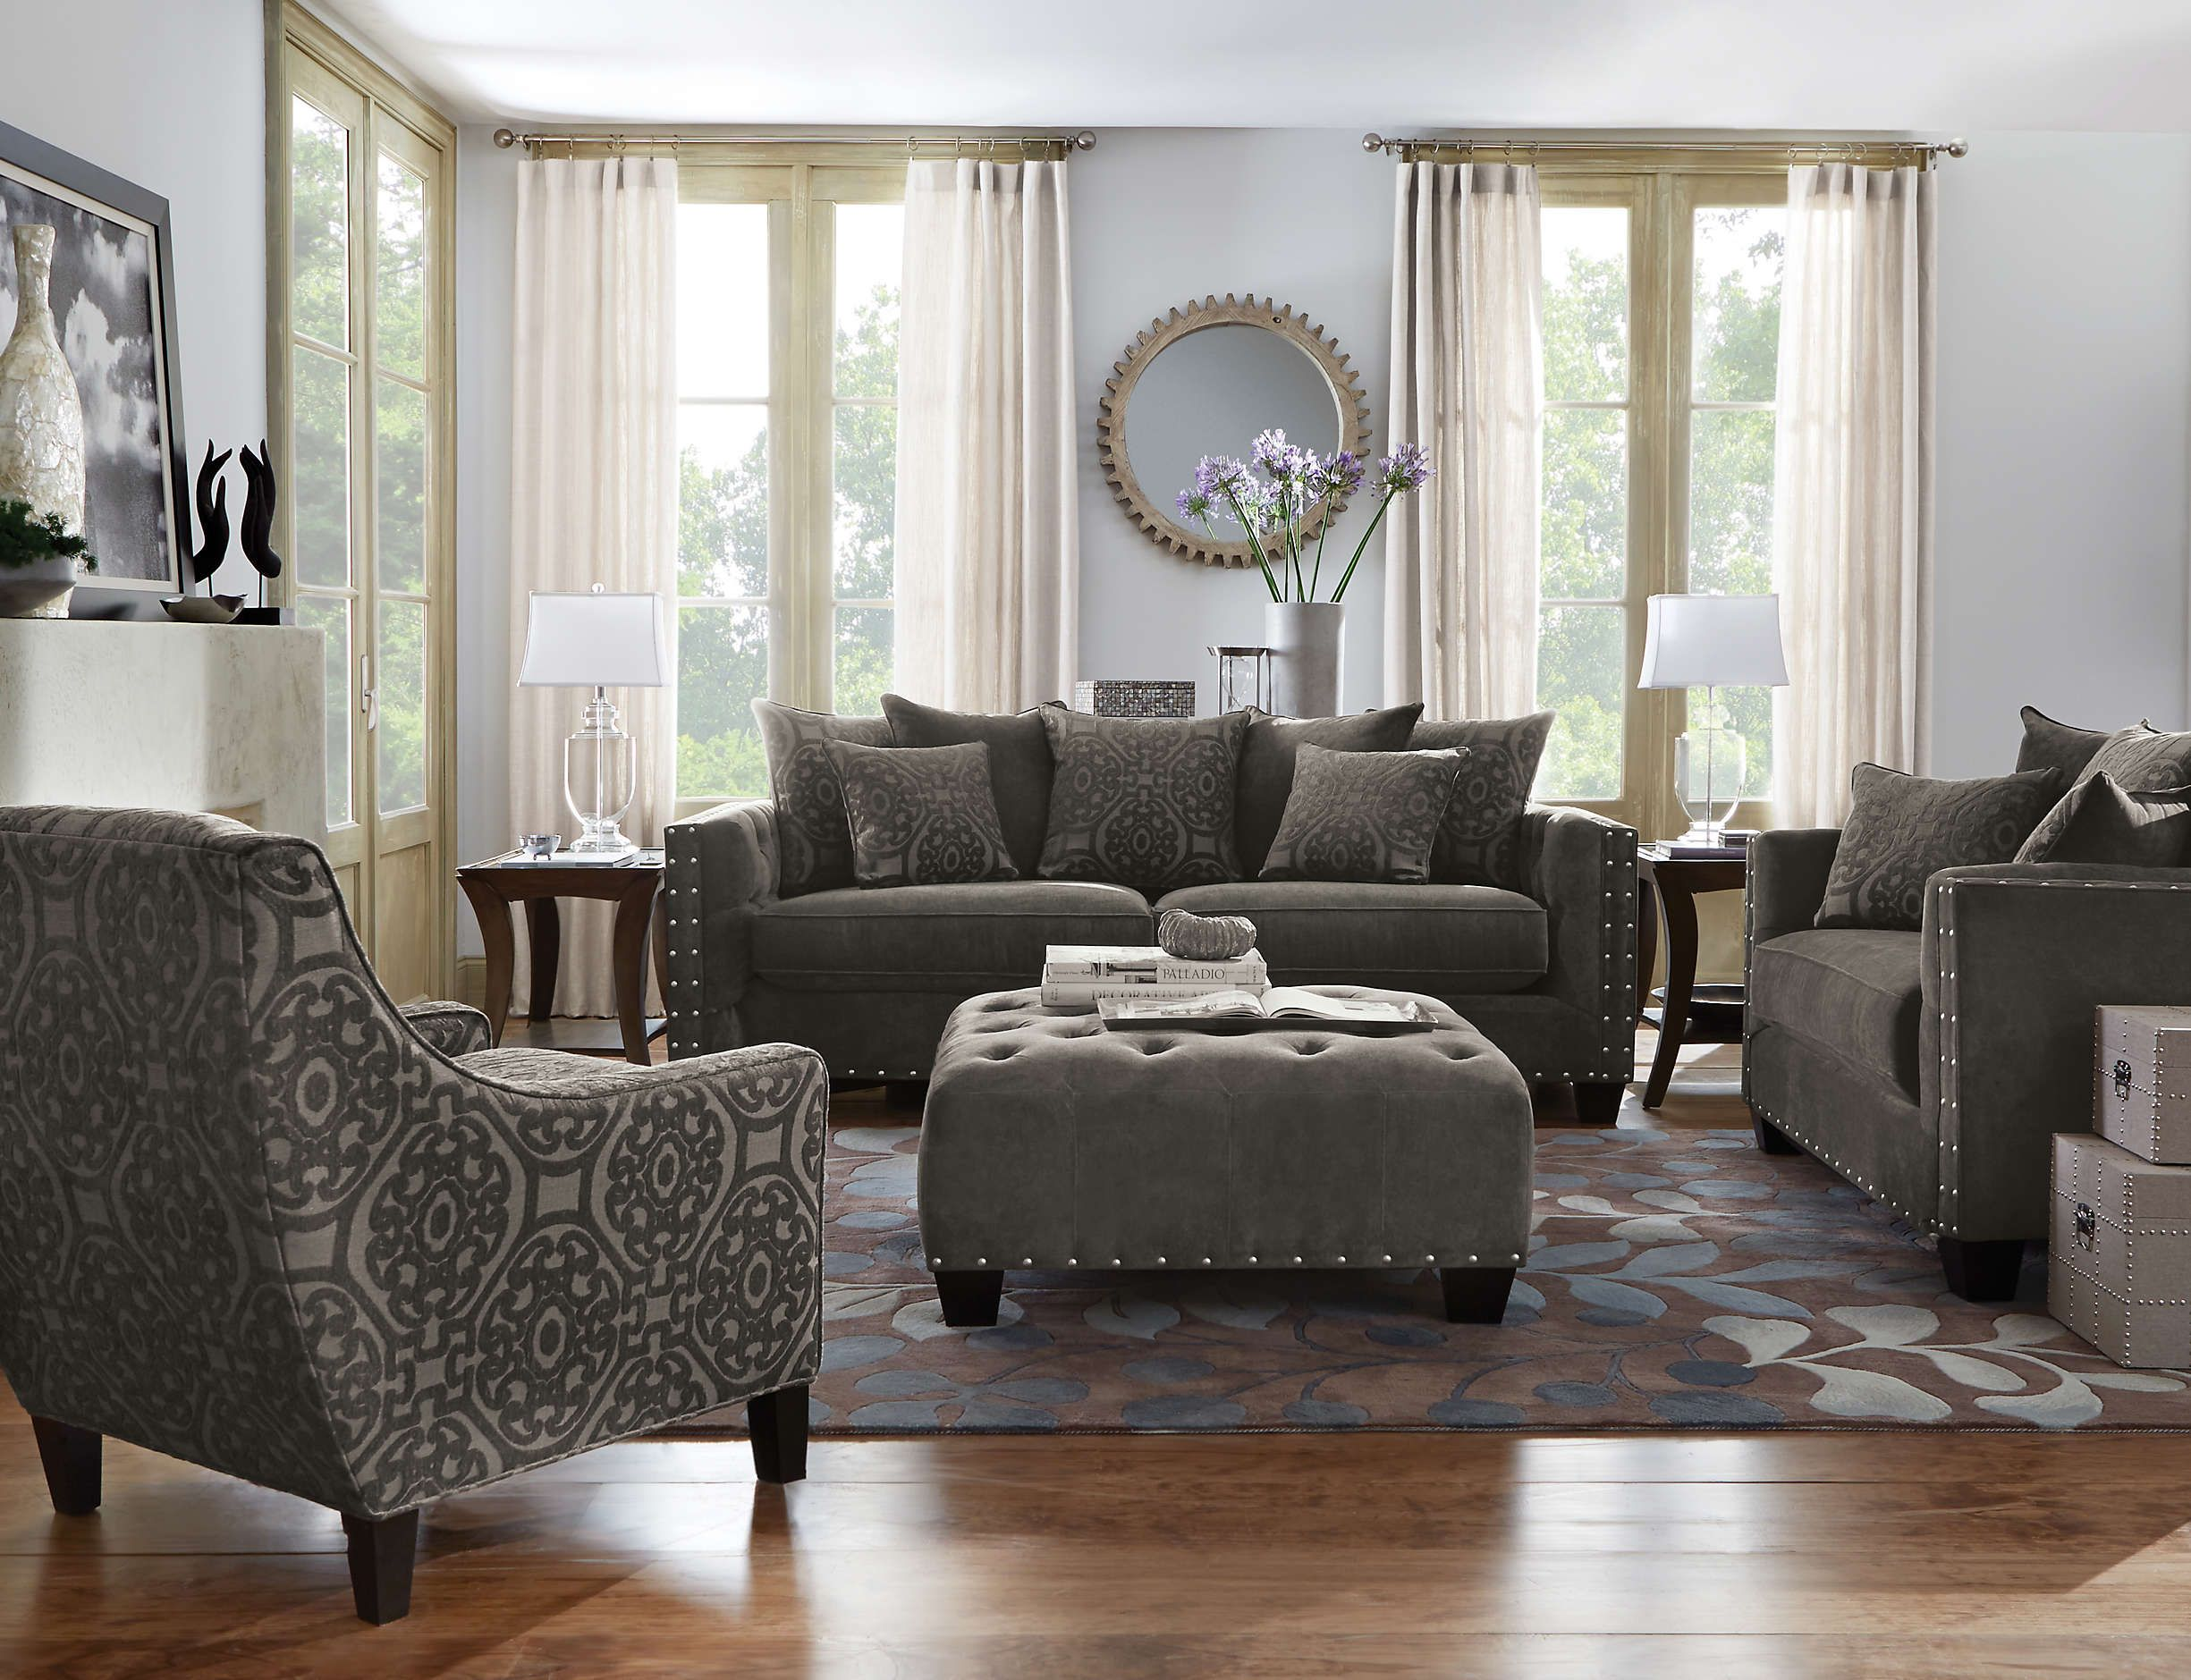 Sidney Road Collection Dream House Living Room Art